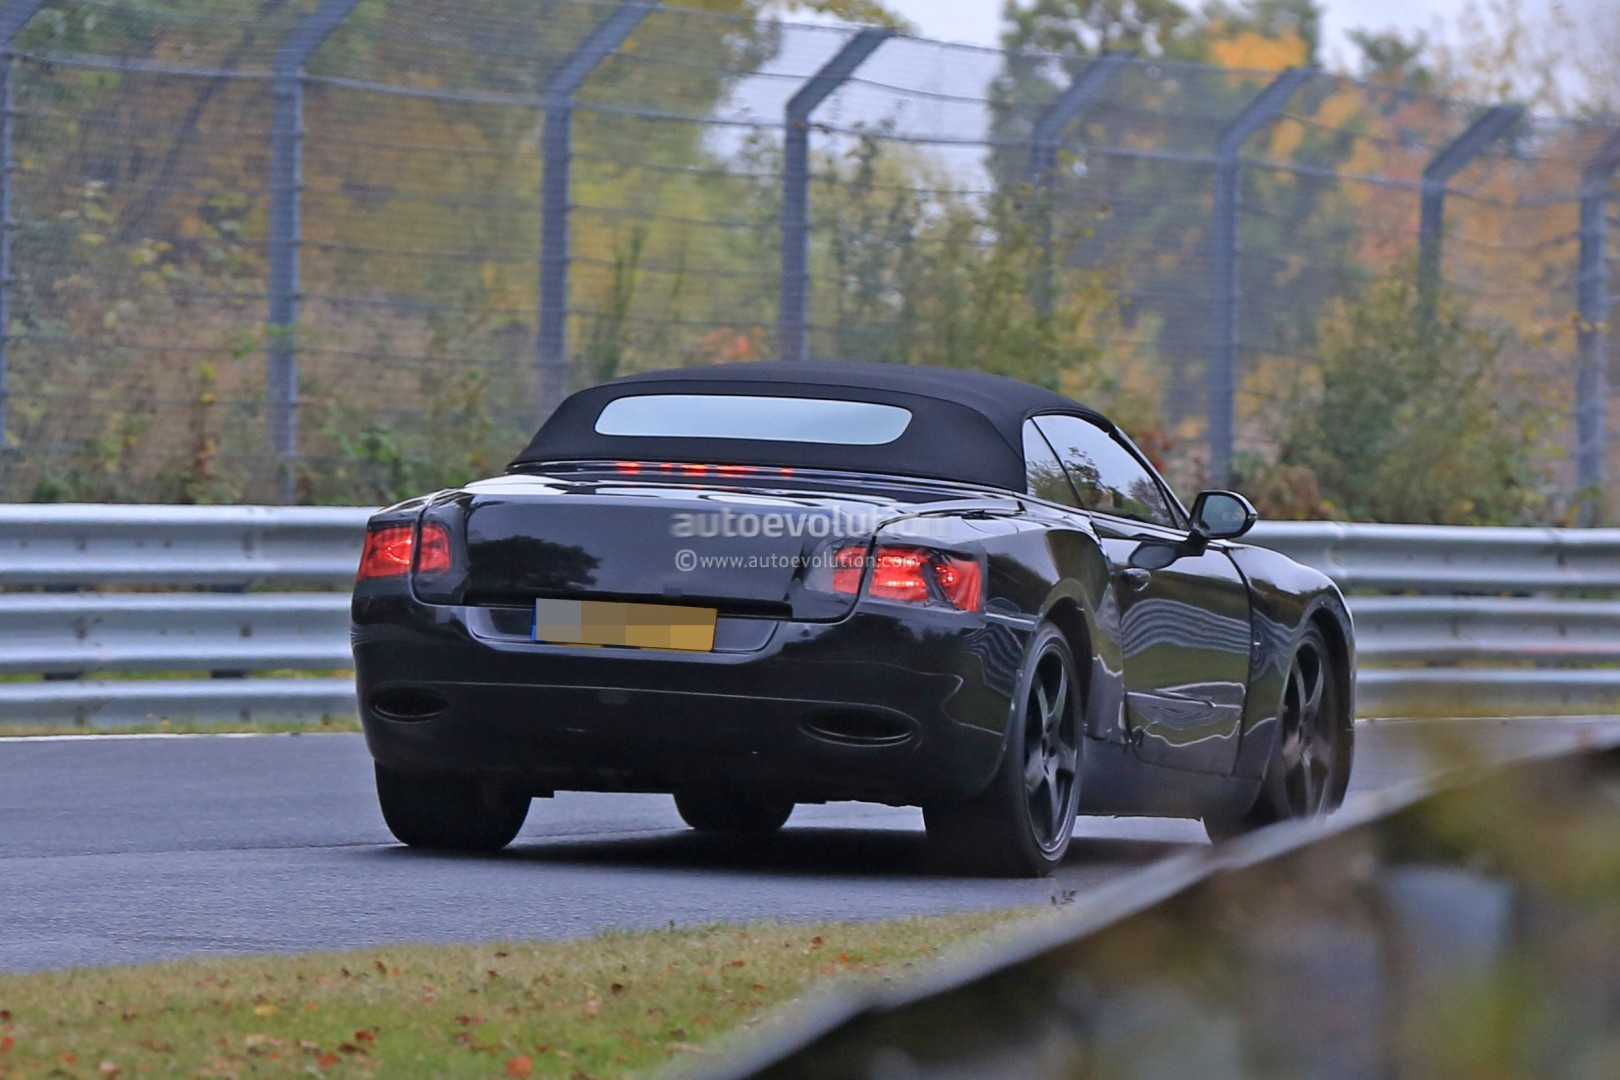 2017 - [Bentley] Continental GT - Page 2 2018-bentley-continental-gt-convertible-shows-wide-stance-on-nurburgring_15